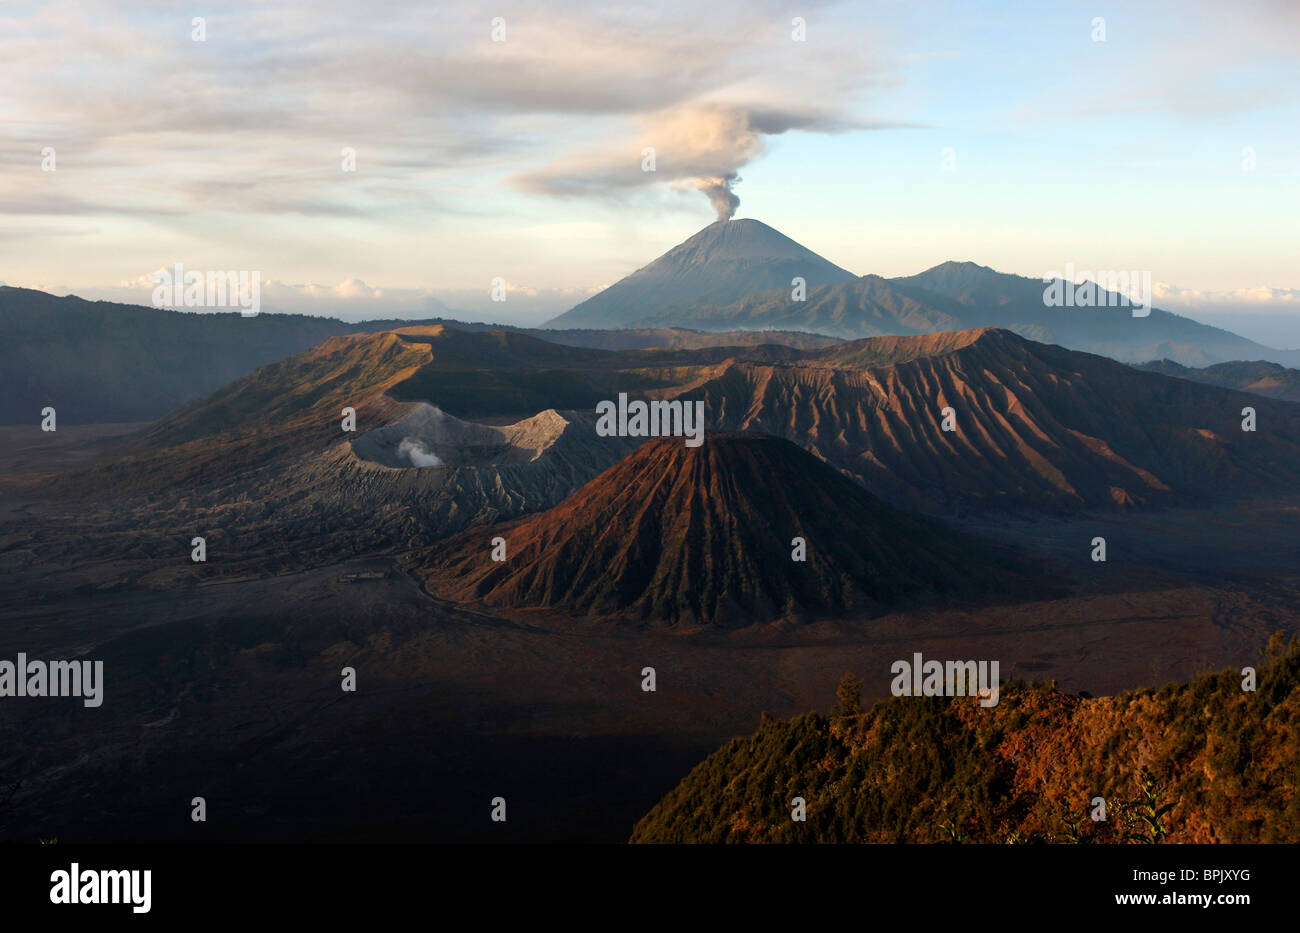 August 26, 2005 - Tengger caldera with erupting Semeru, Java Island, Indonesia. - Stock Image